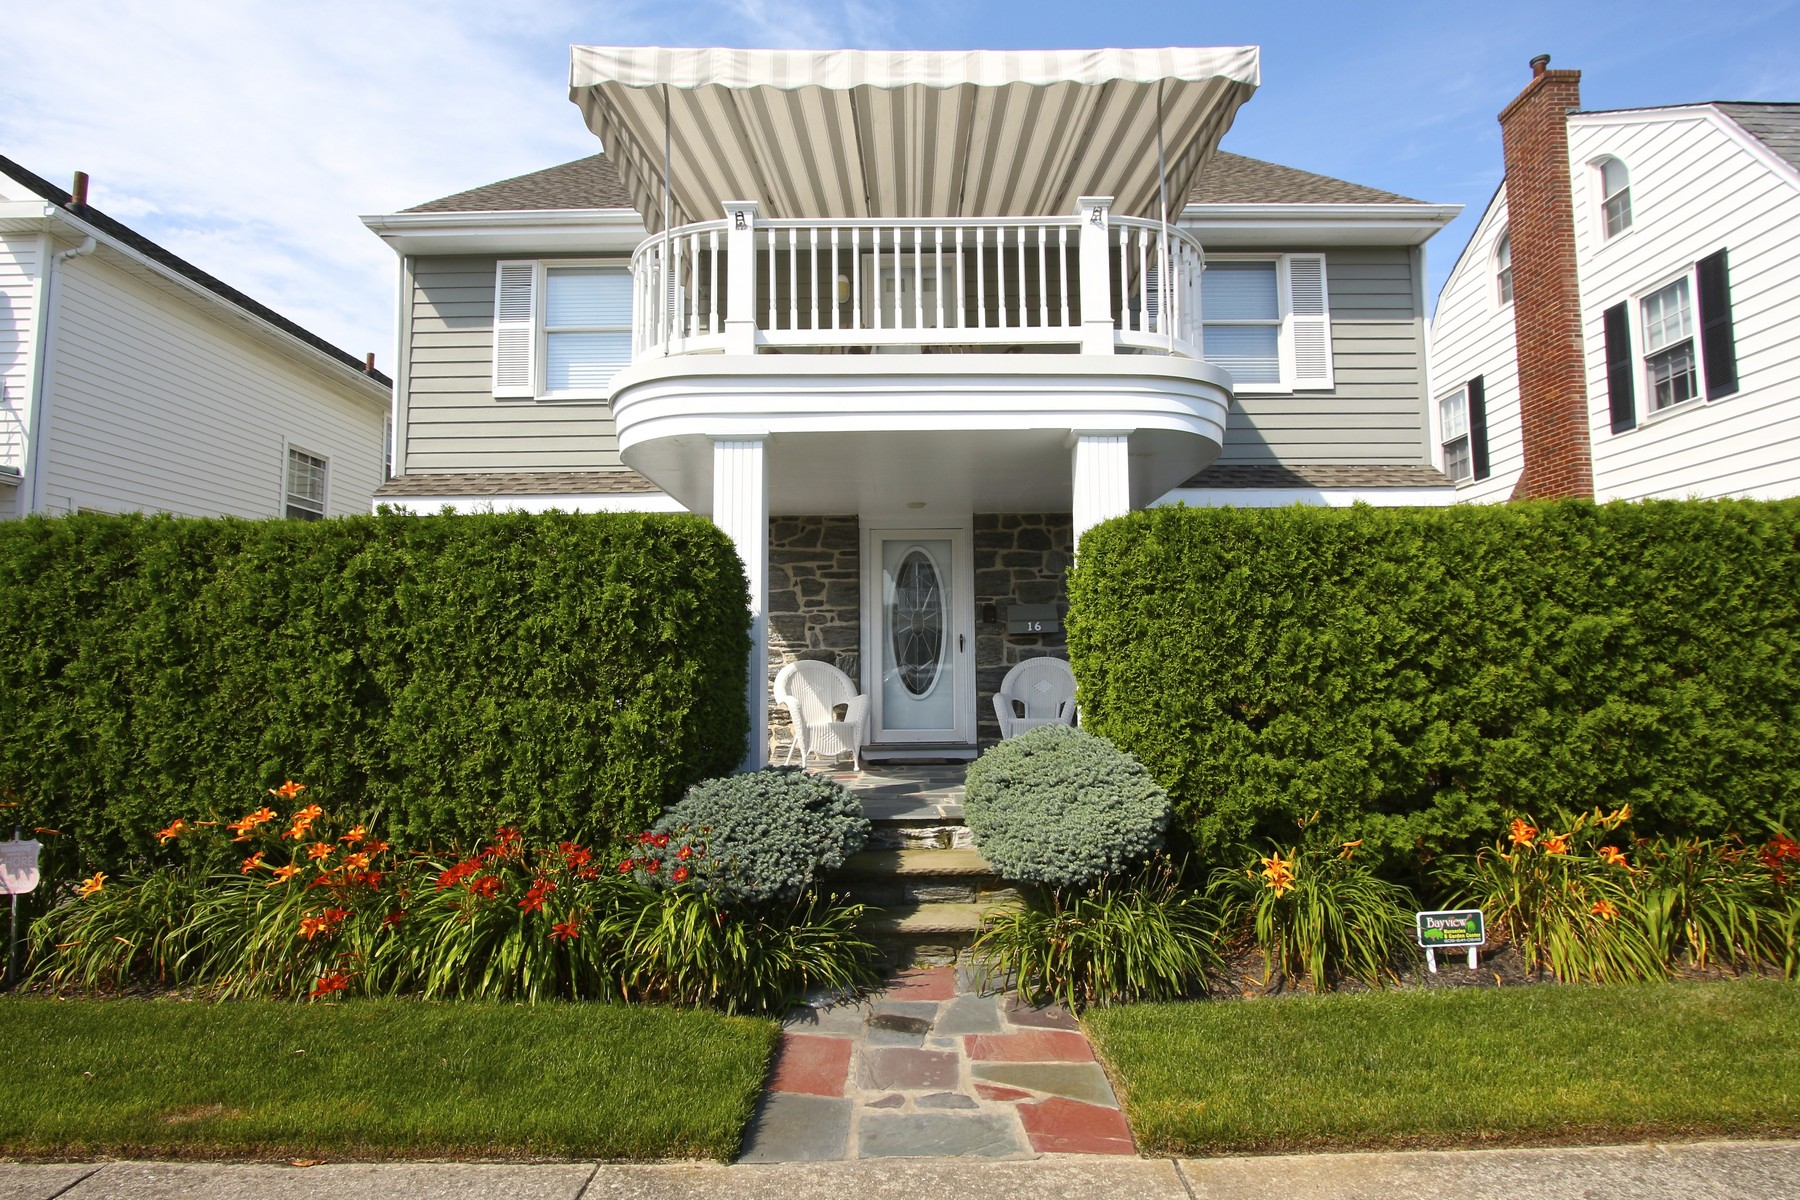 Single Family Home for Sale at 16 S Thurlow 16 S Thurlow Avenue Southside Parkway Margate, New Jersey, 08402 United States